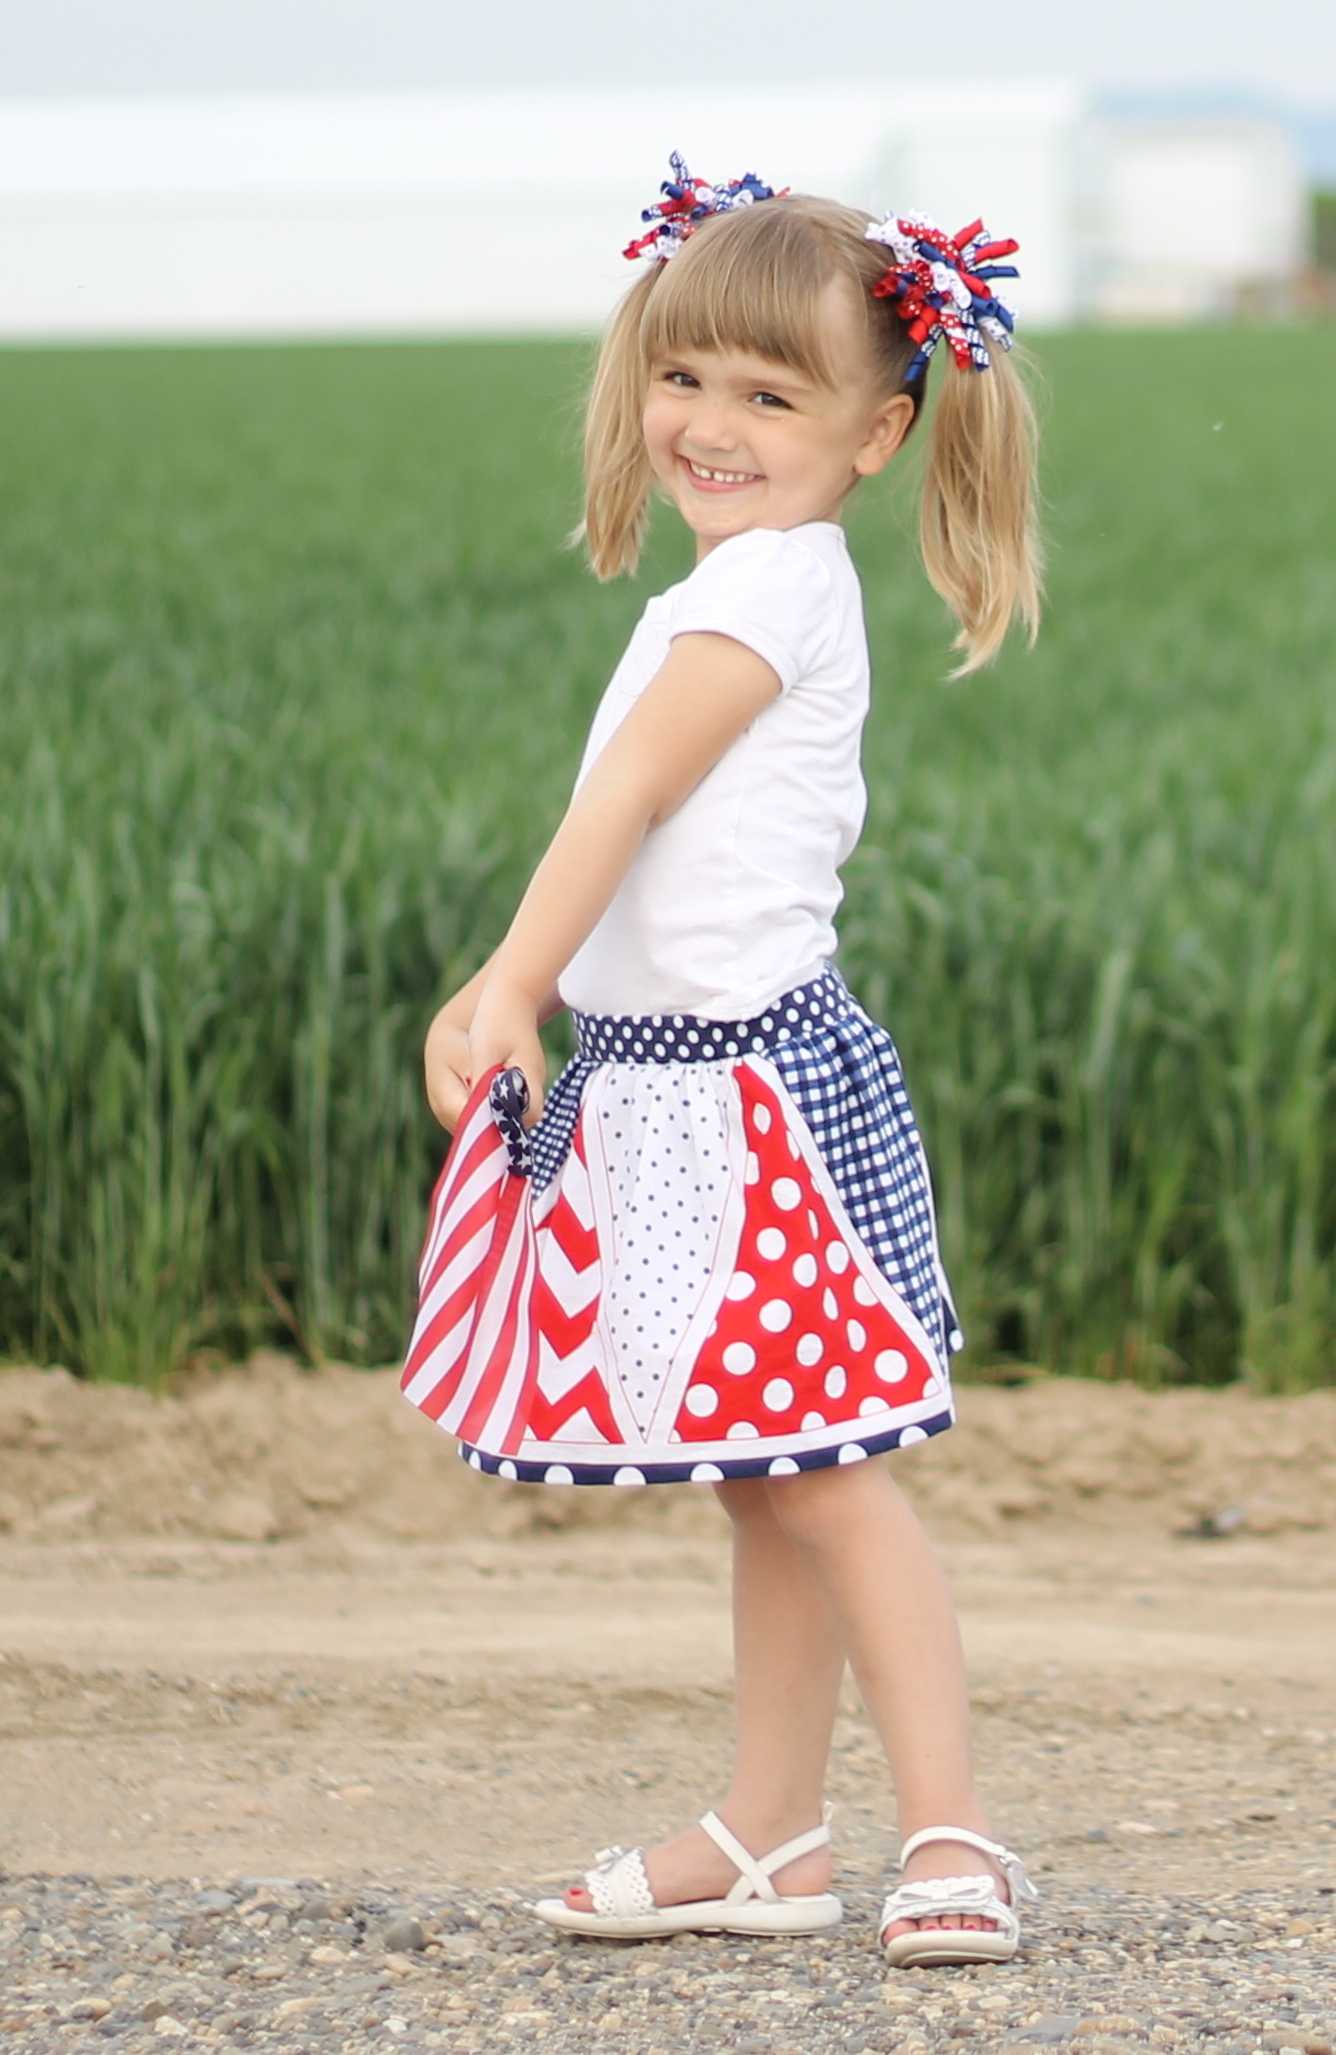 Star Spangled Skort Free Pattern - Peek-a-Boo Pages - Patterns ...